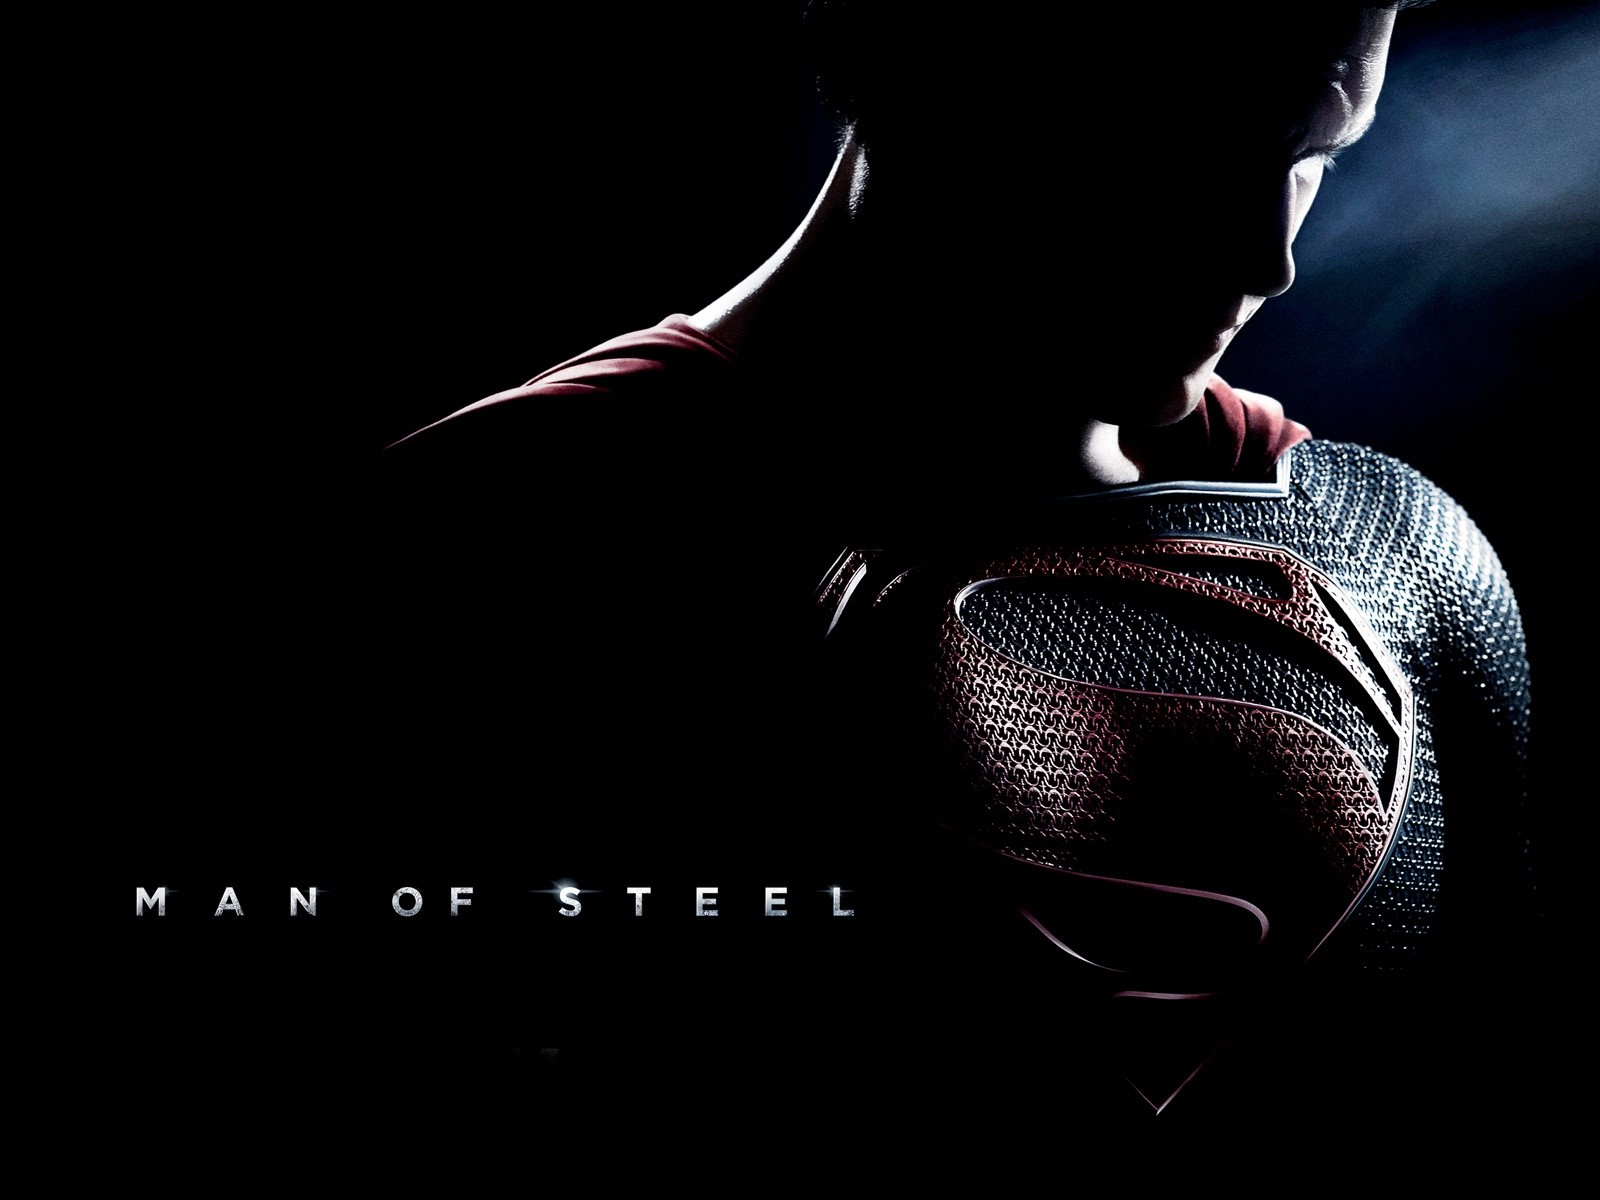 Wallpaper Man of steel Images